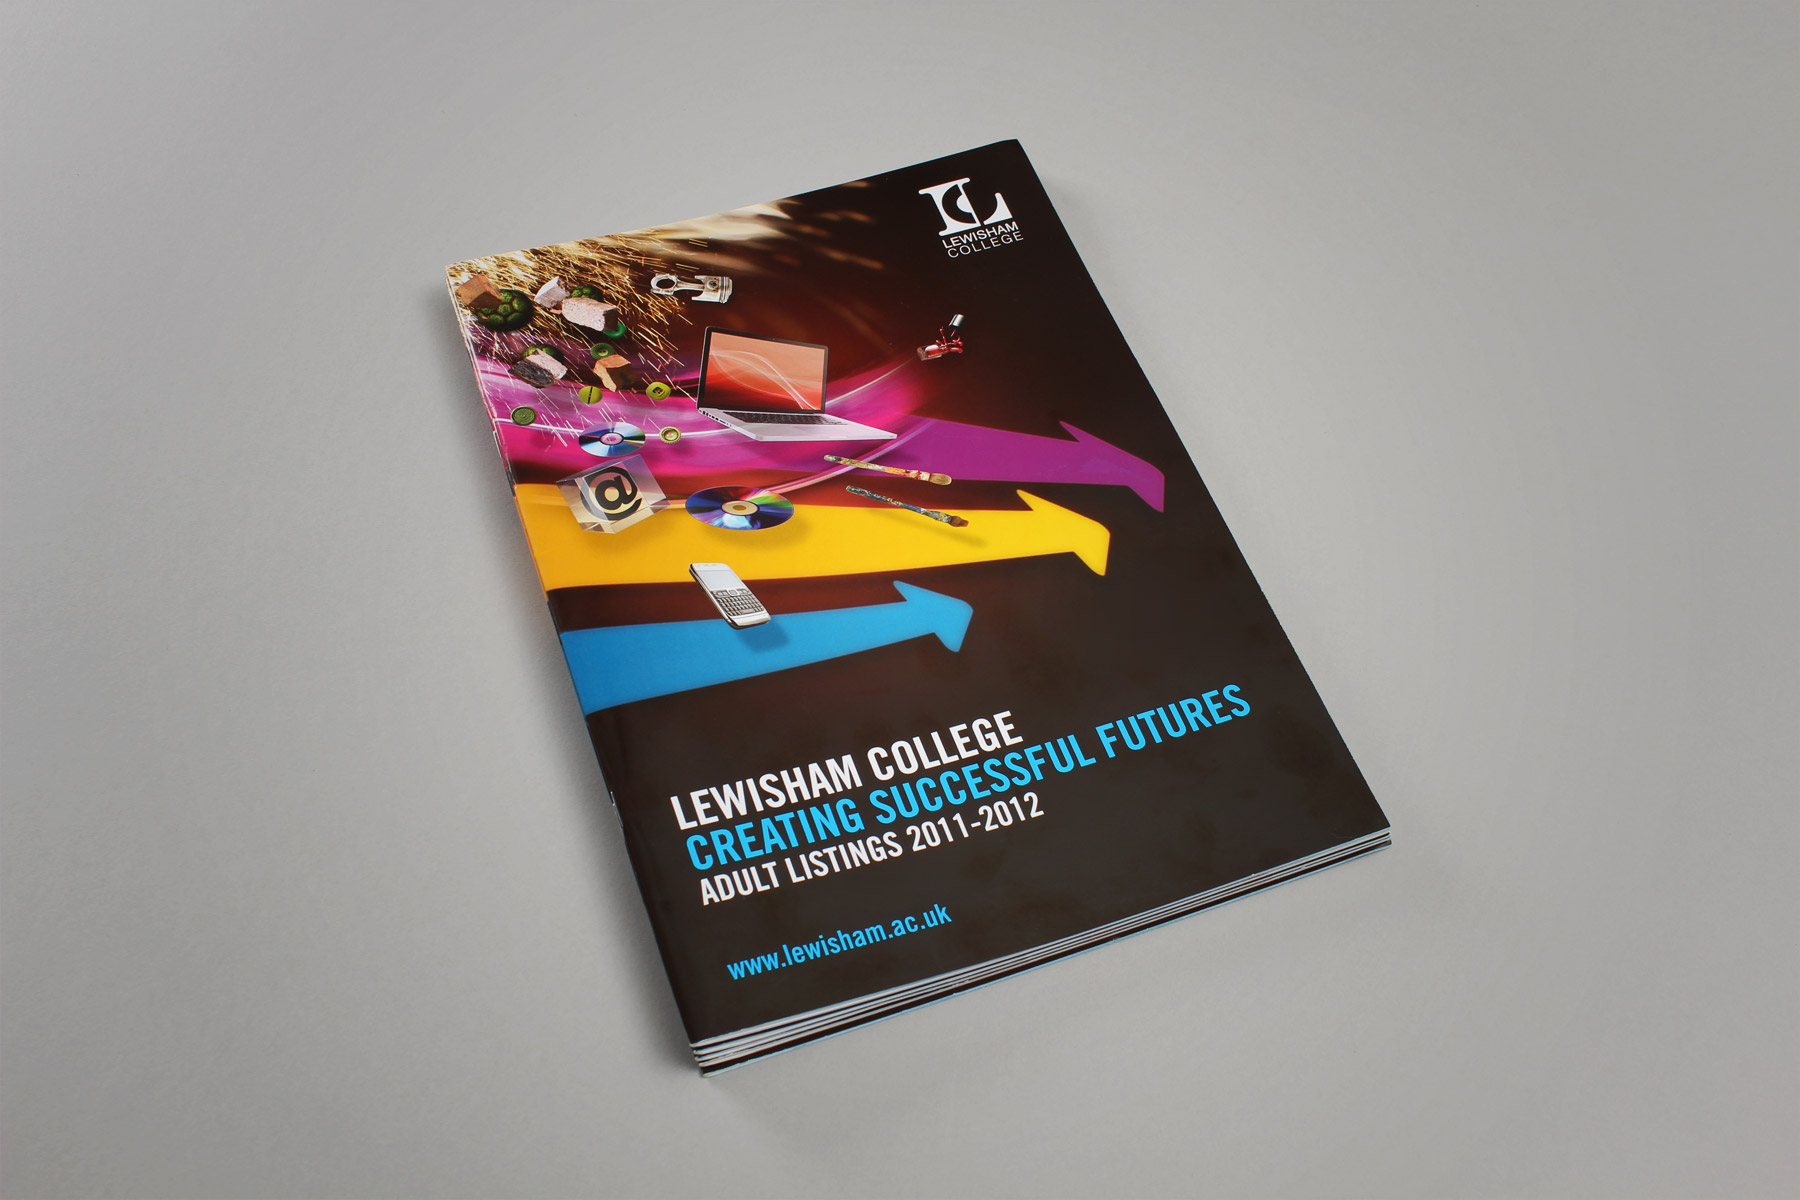 Coupled with the delivery of the course guide, a specialised publication - The Adult Listings, focussed at the adult learner.